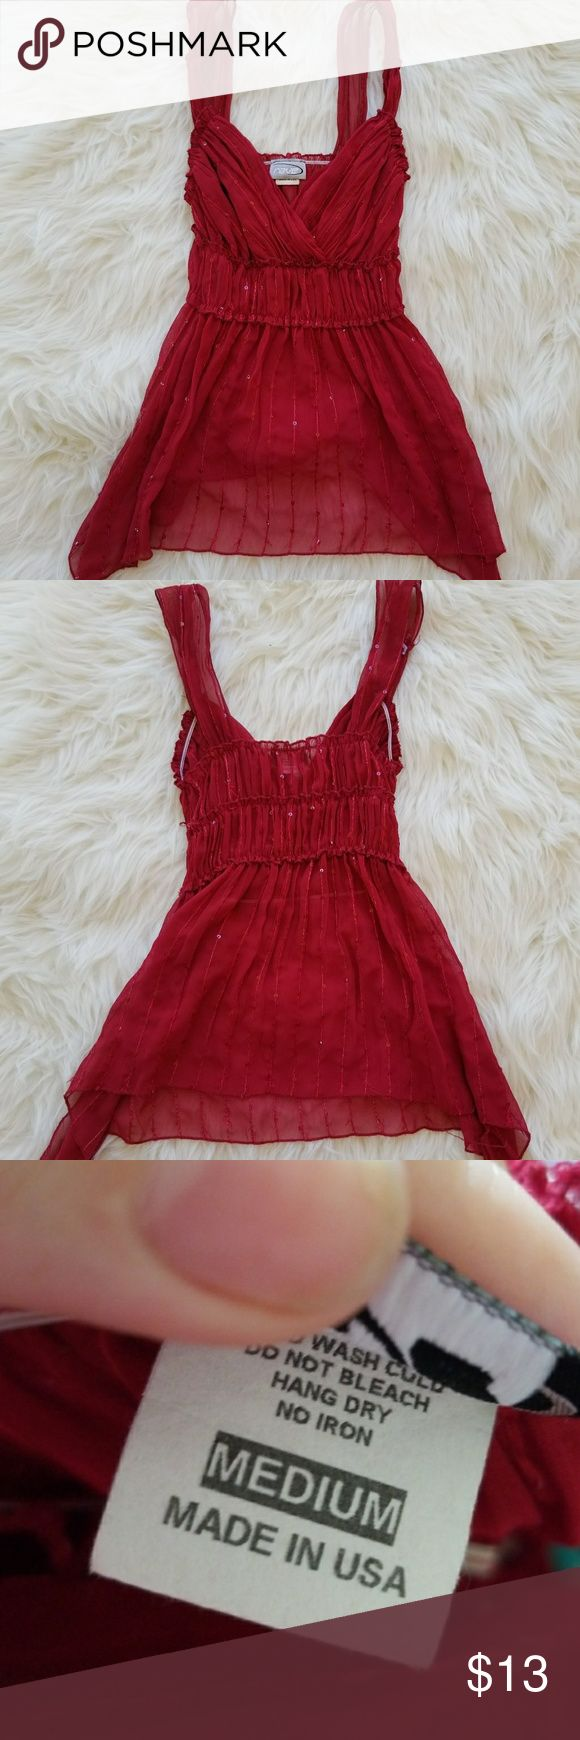 90s Sheer Sequin Baby doll Top Sheer red baby doll tank. Very 90's. Stretchy.   Brand: Rave Size: Medium Condition: Perfect, no flaws at all.  #vintage #sheer #boho #bohemian #bohochic #hippiechic #90s #90svintage #summer #summerfashion #summerstyle #fashion #style #cheap #styleforcheap #xoxopf #bundleandsave Tops Tank Tops